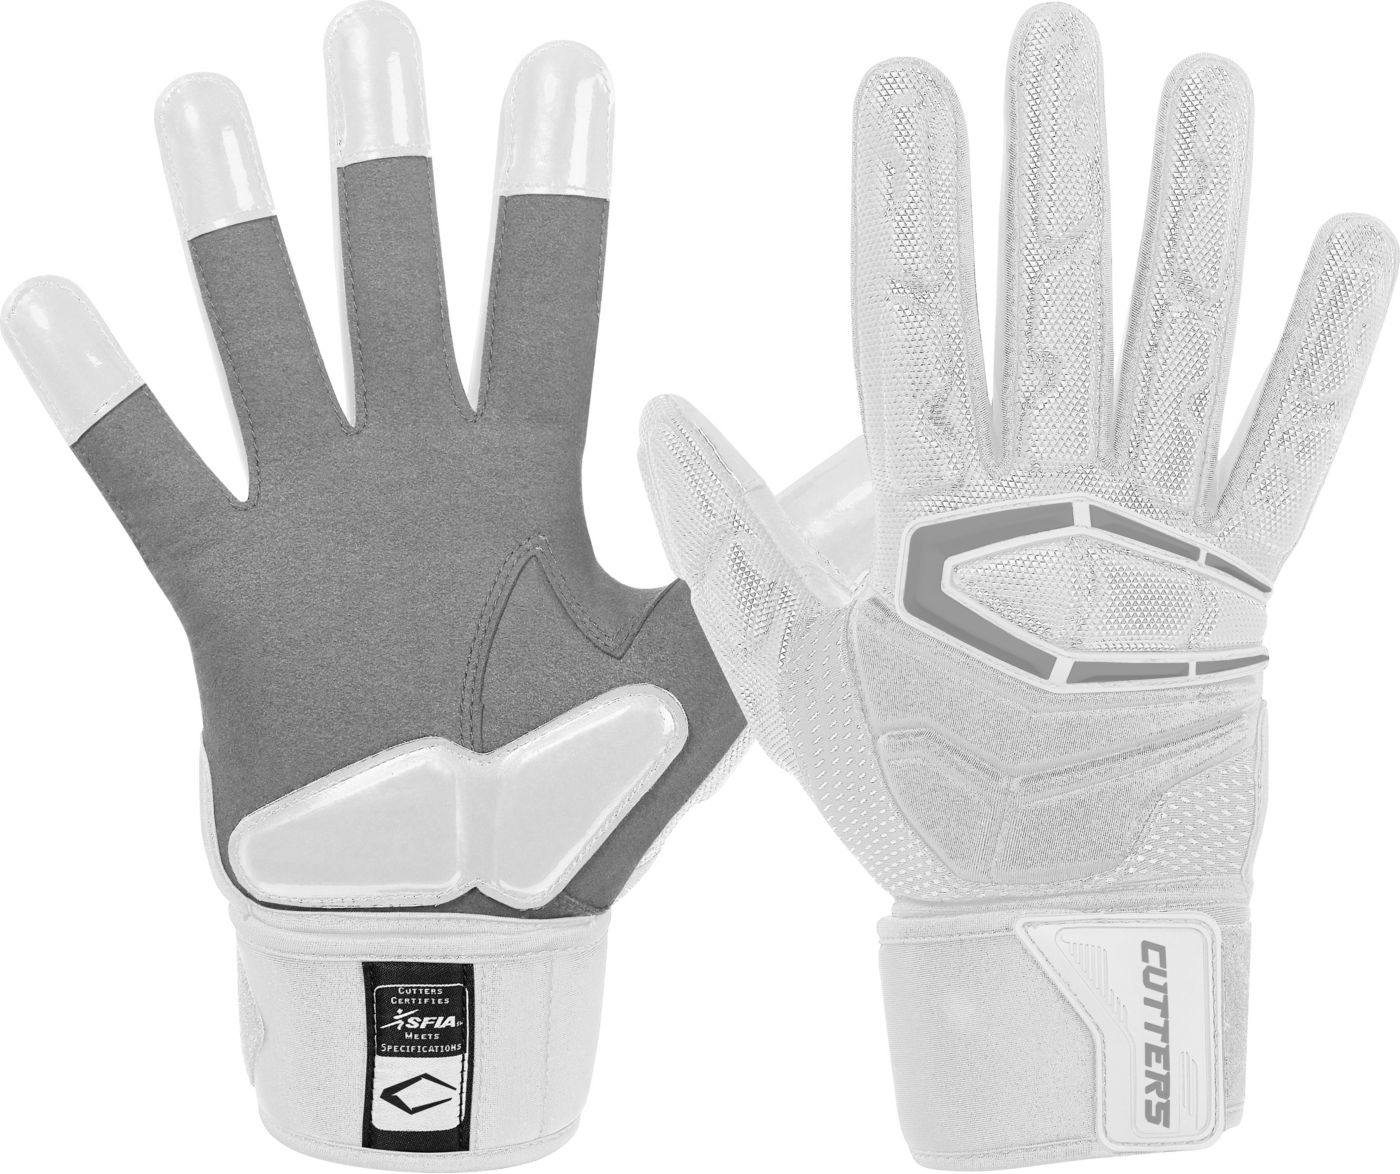 Cutters Adult Force 3.0 Lineman Gloves